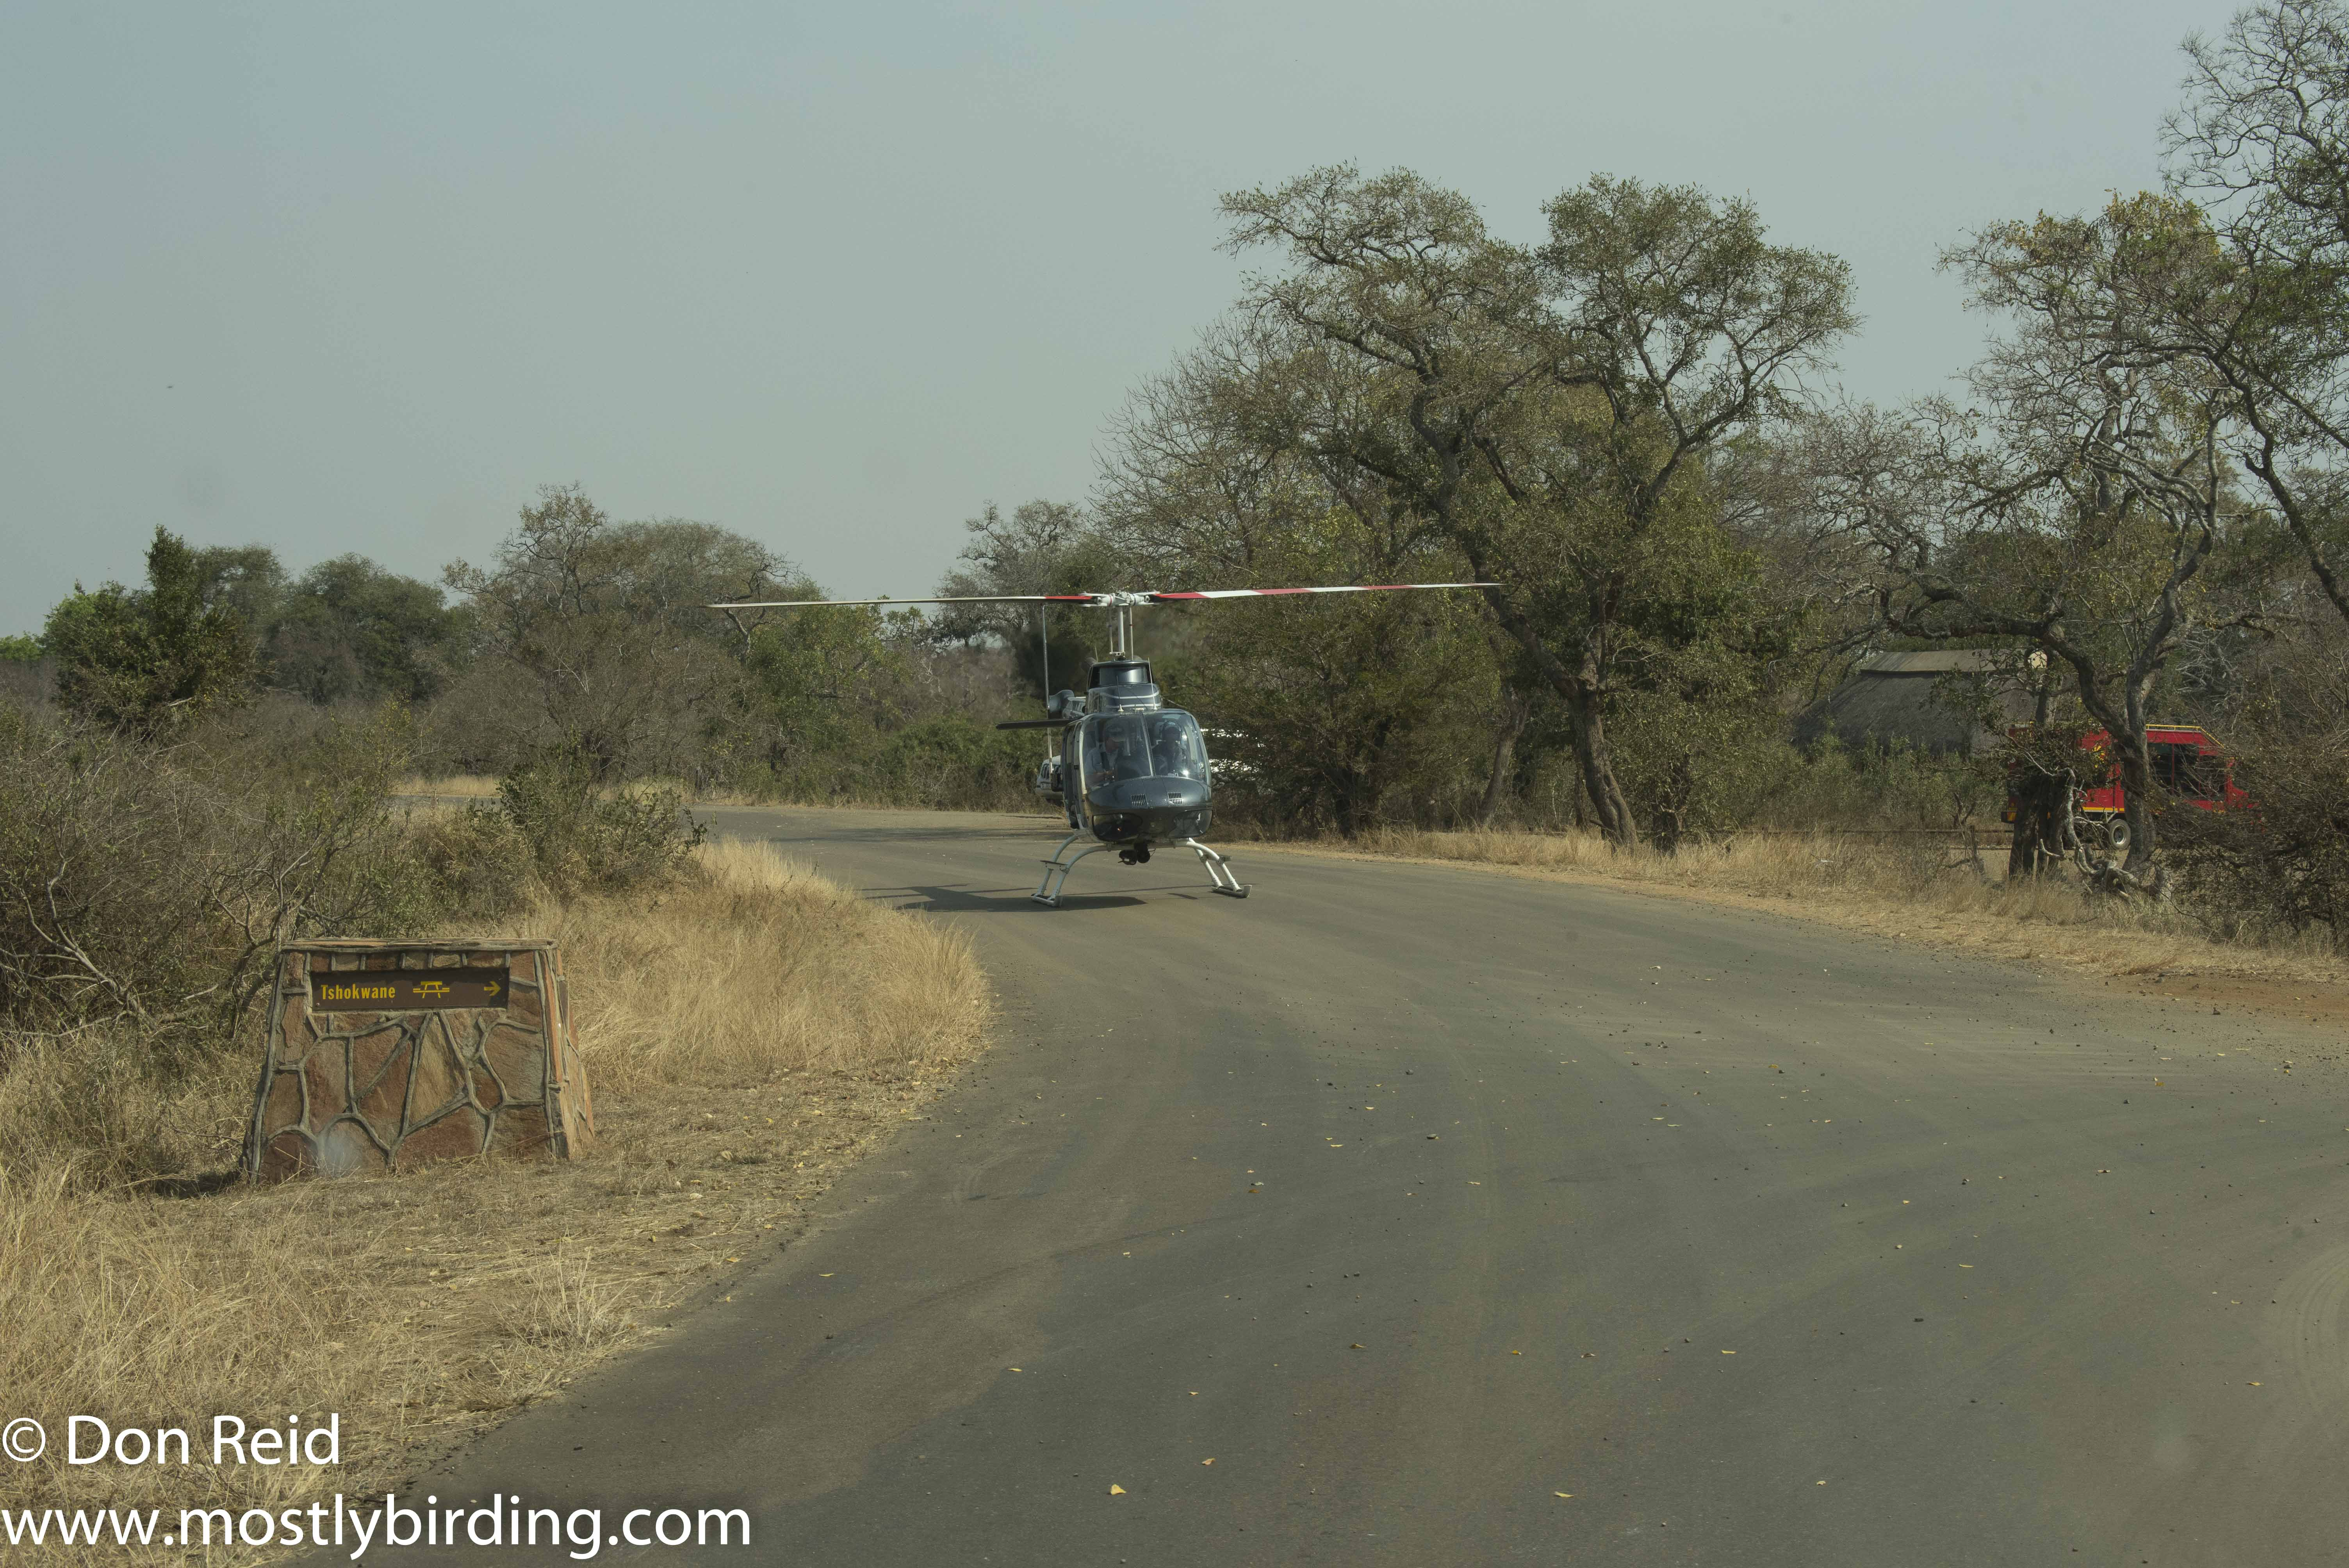 Whirly bird, Kruger Park